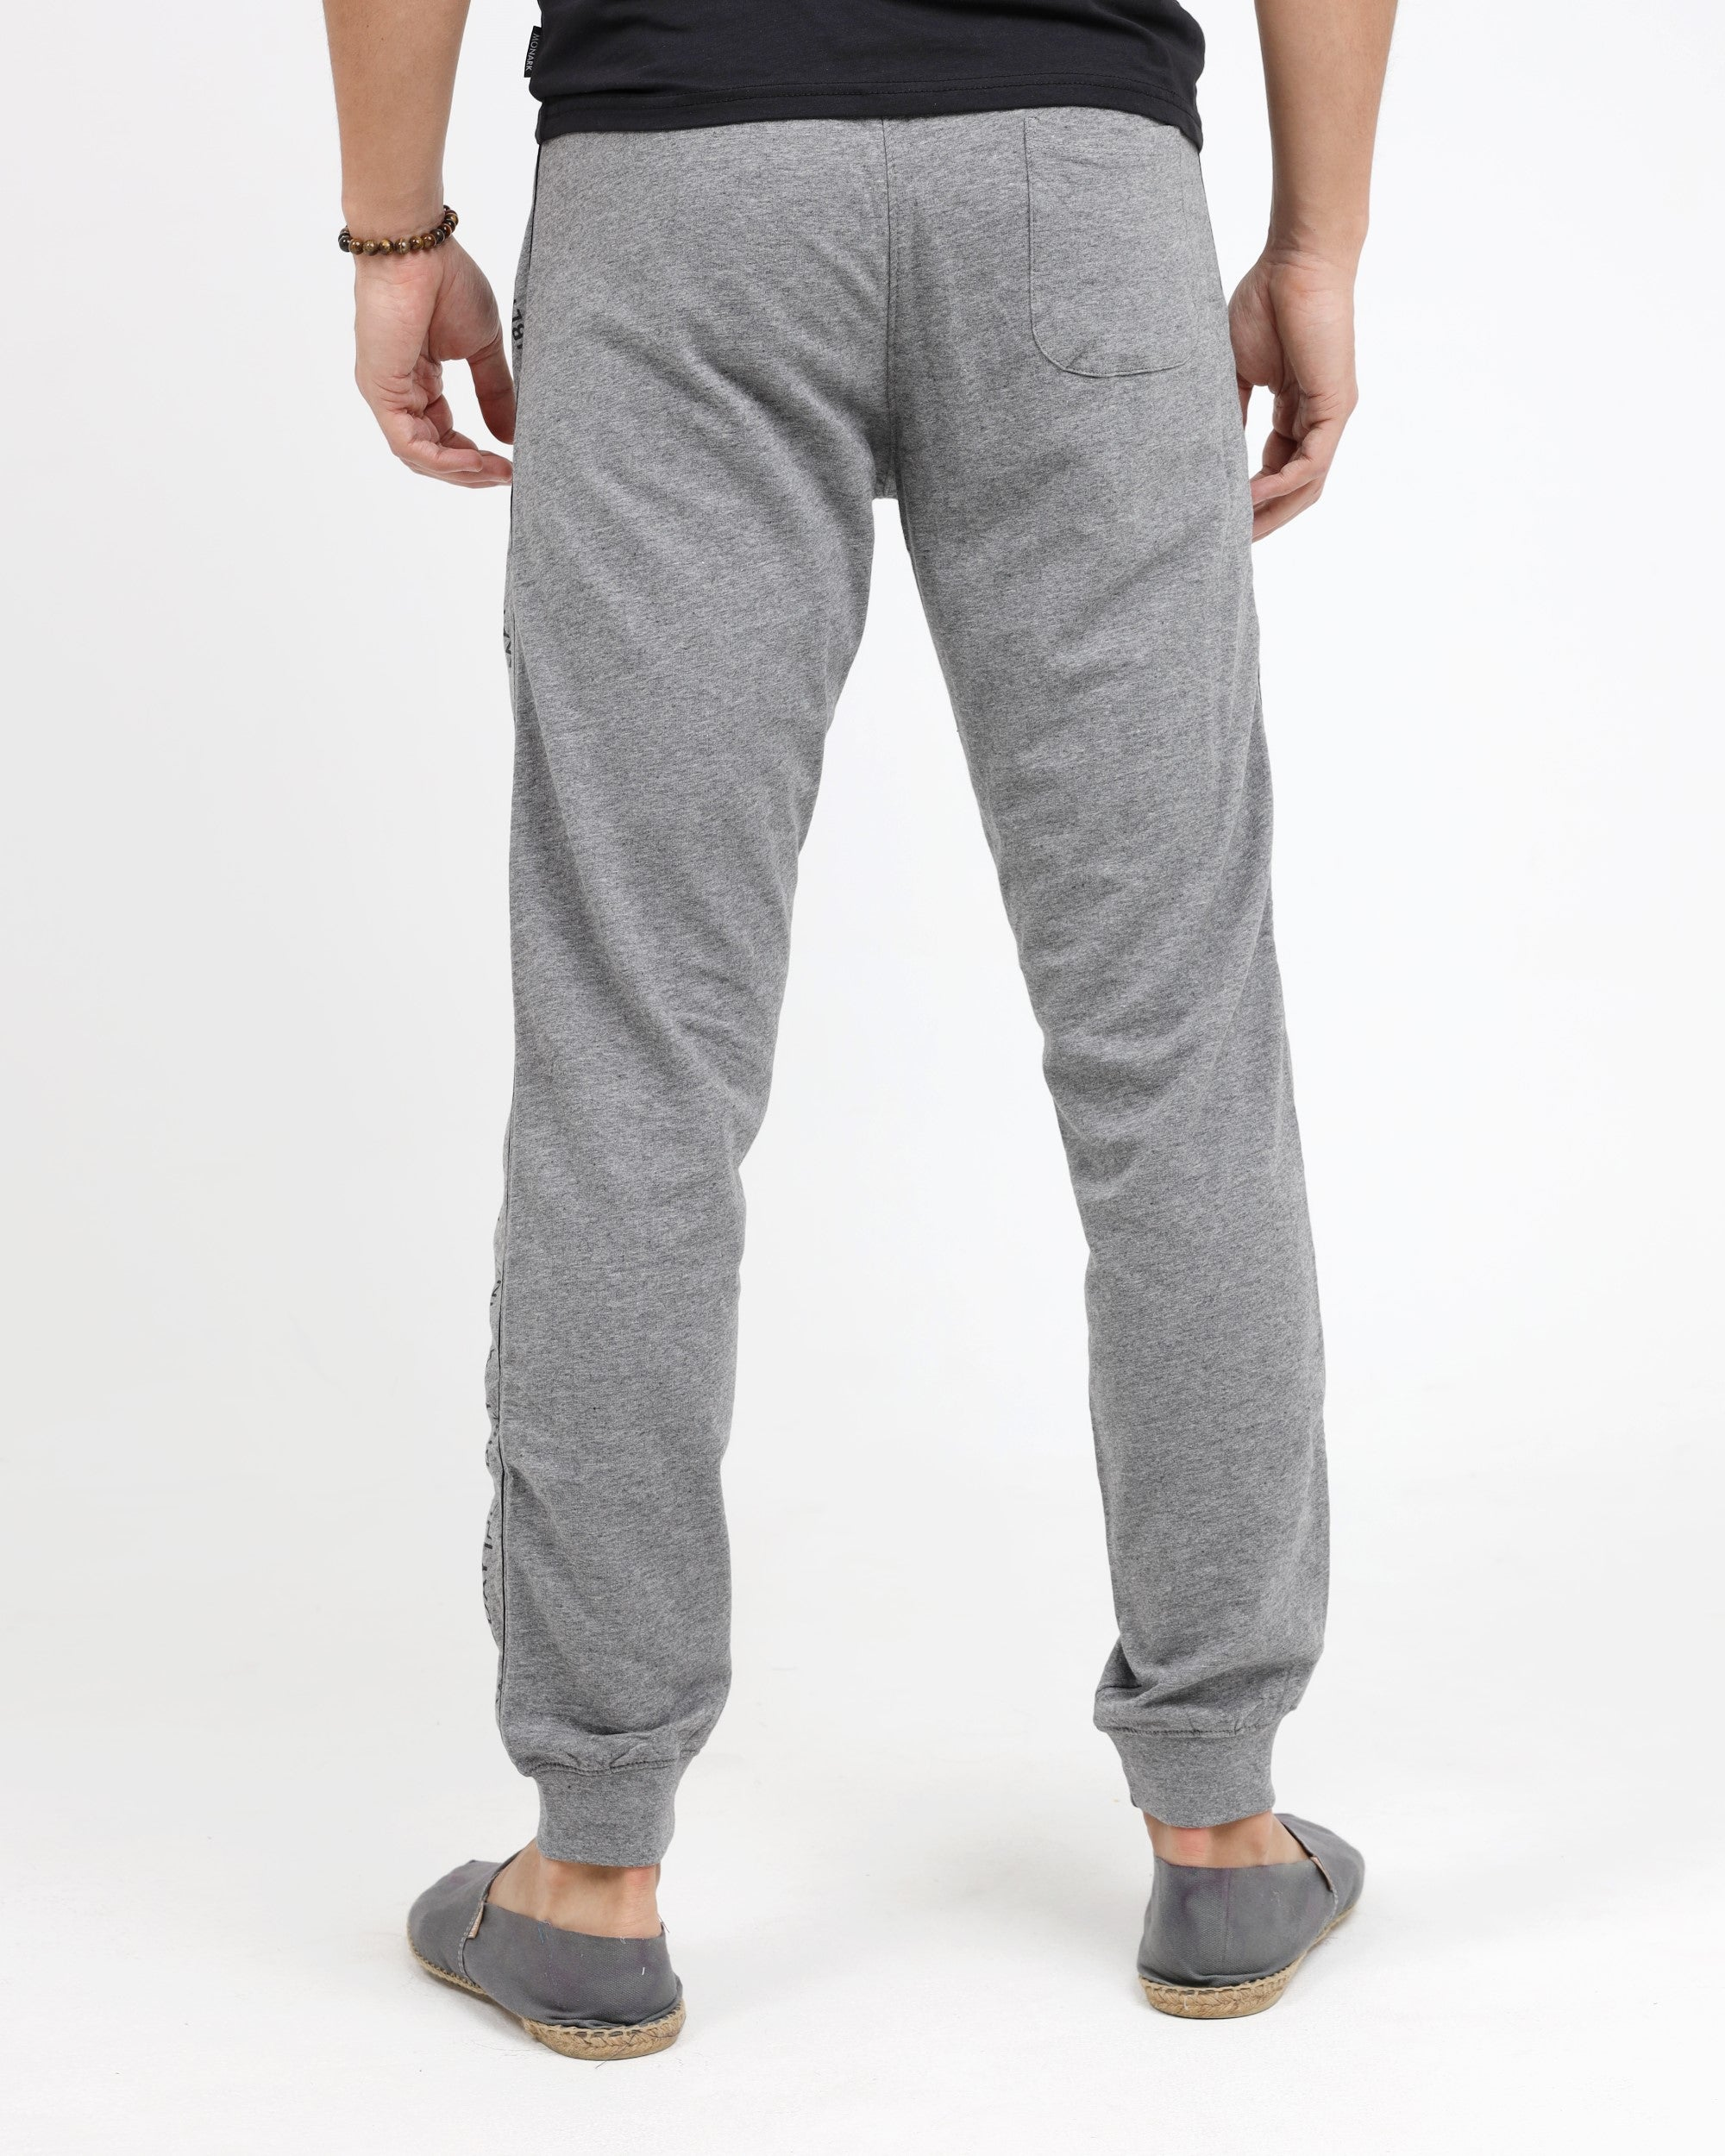 GRAY HEATHER JOG TROUSER